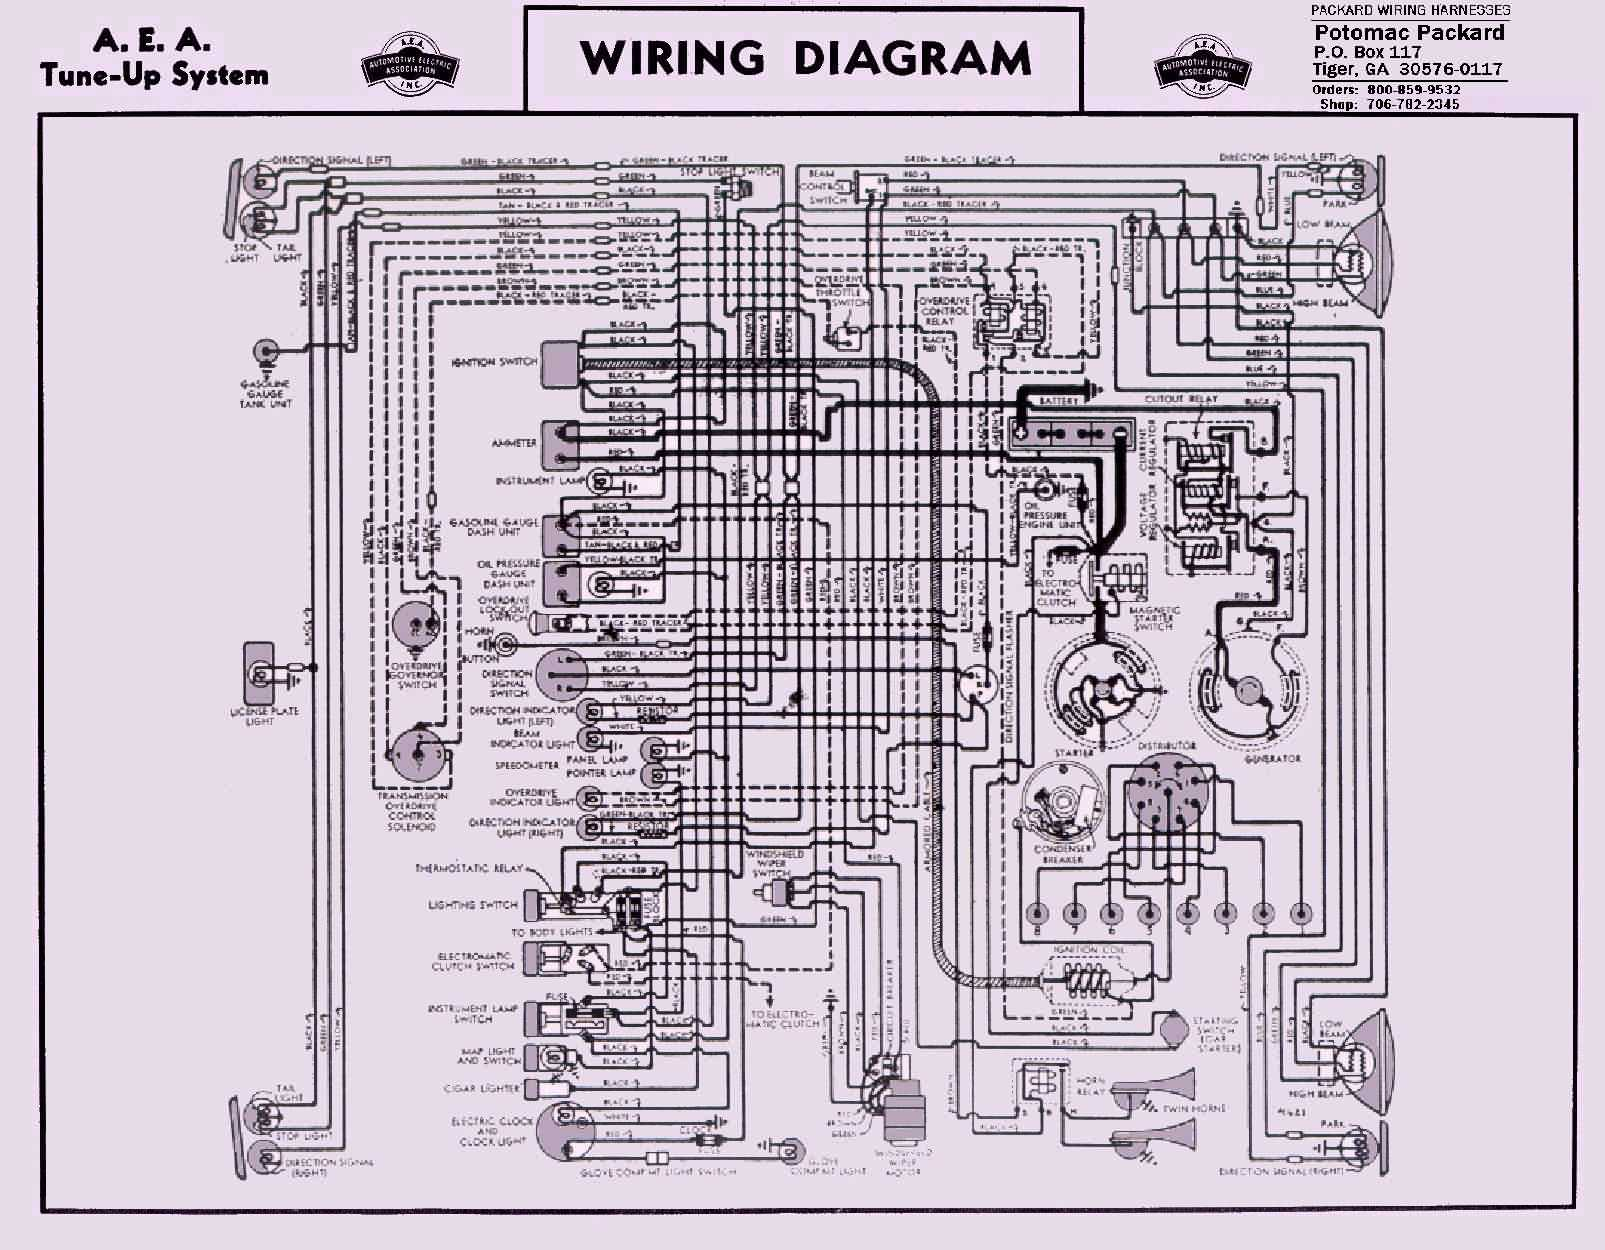 Packard Wiring Diagram Schemes 1951 Dodge Truck Diagrams The Old Car Manual Project Rh Oldcarmanualproject Com Electric Motor